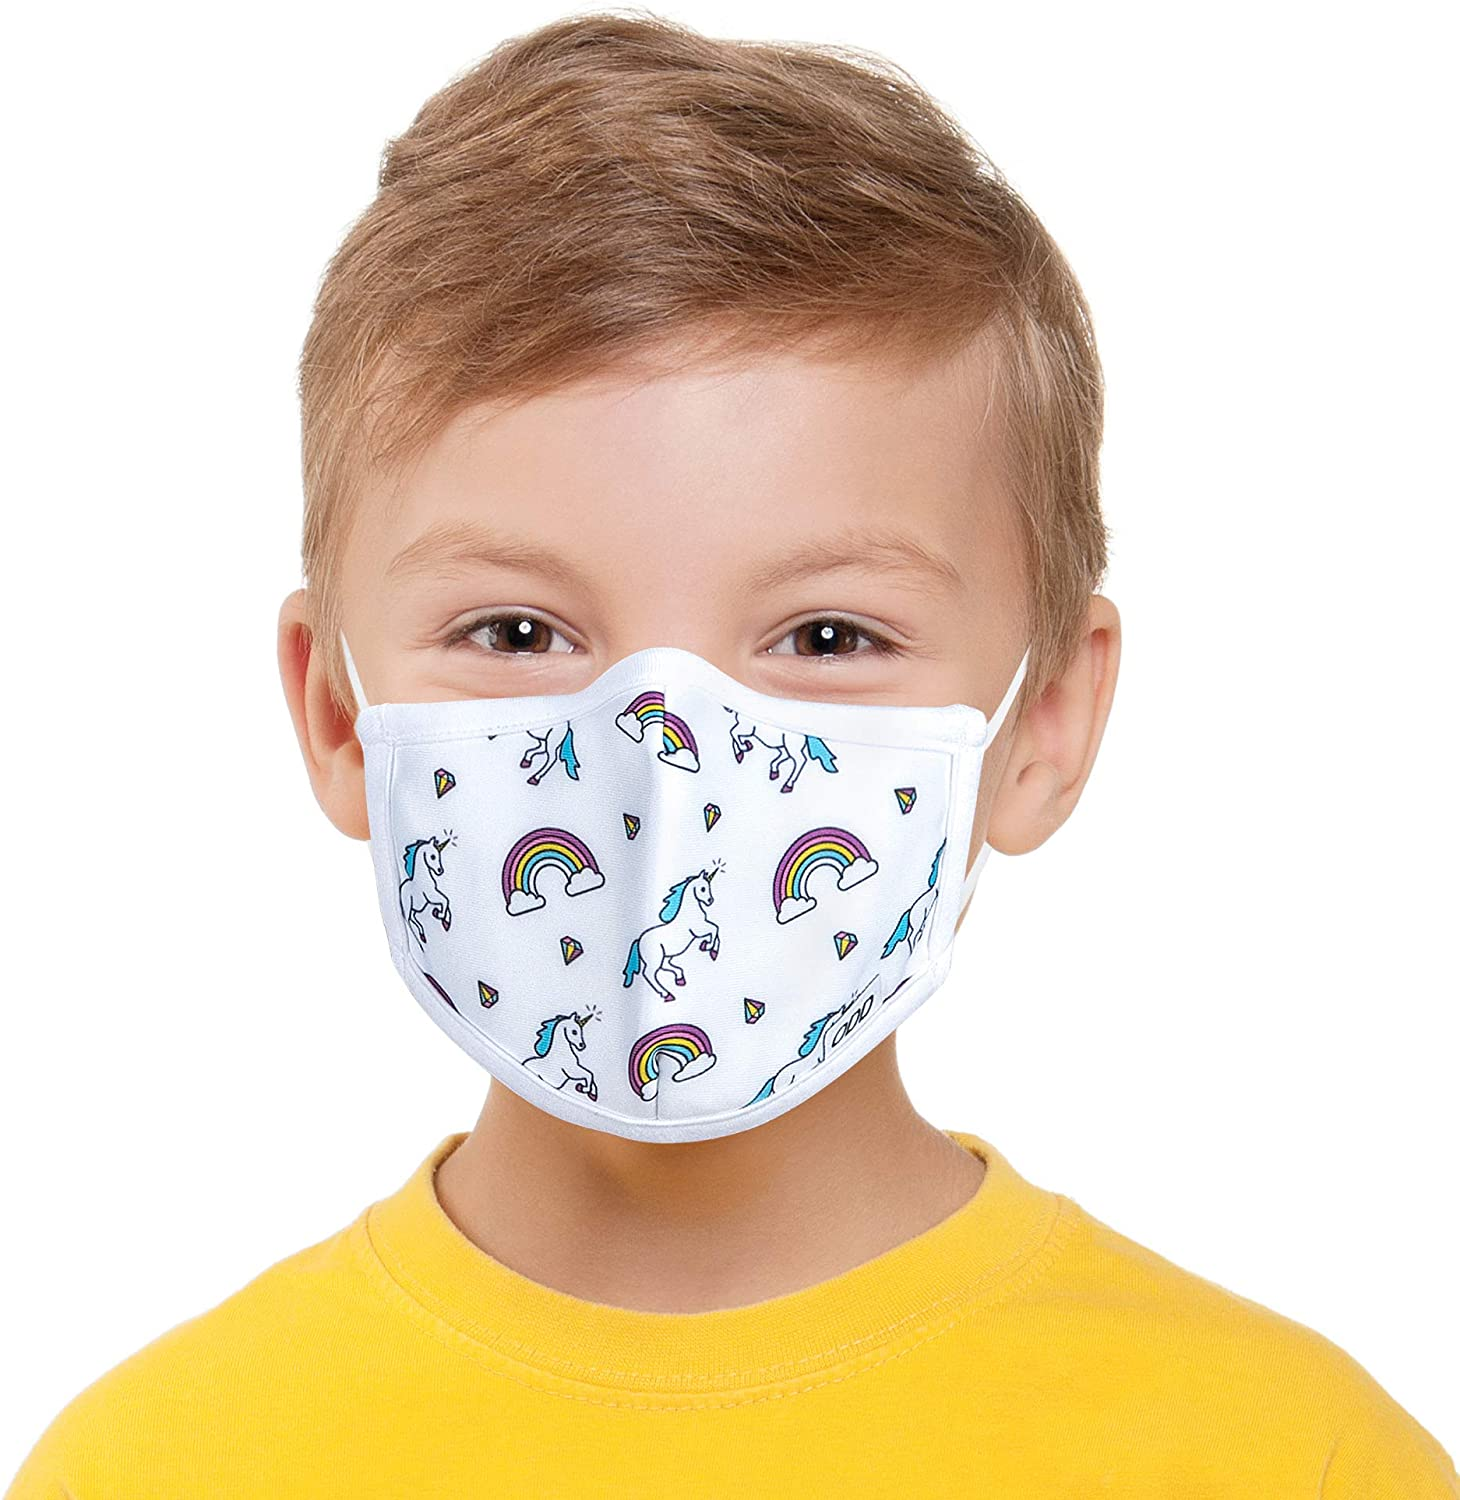 Odd Masks, Kids, Graphic, Fun Unique, Designer Face Mask, Reusable Breathable Fashion